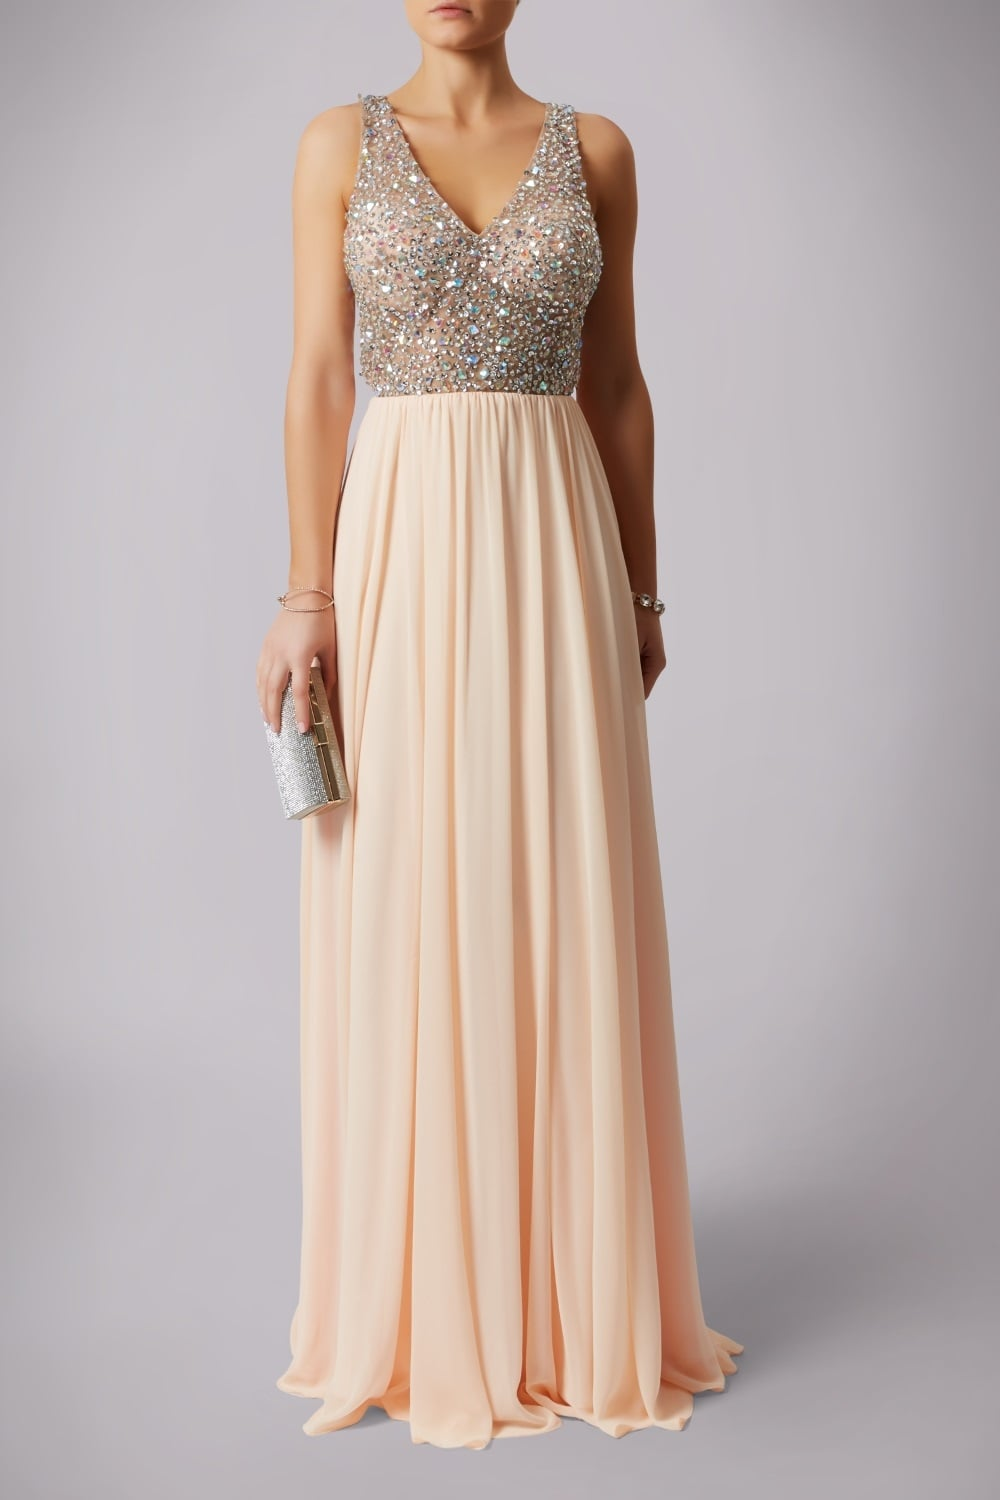 Buy dresses online next day delivery